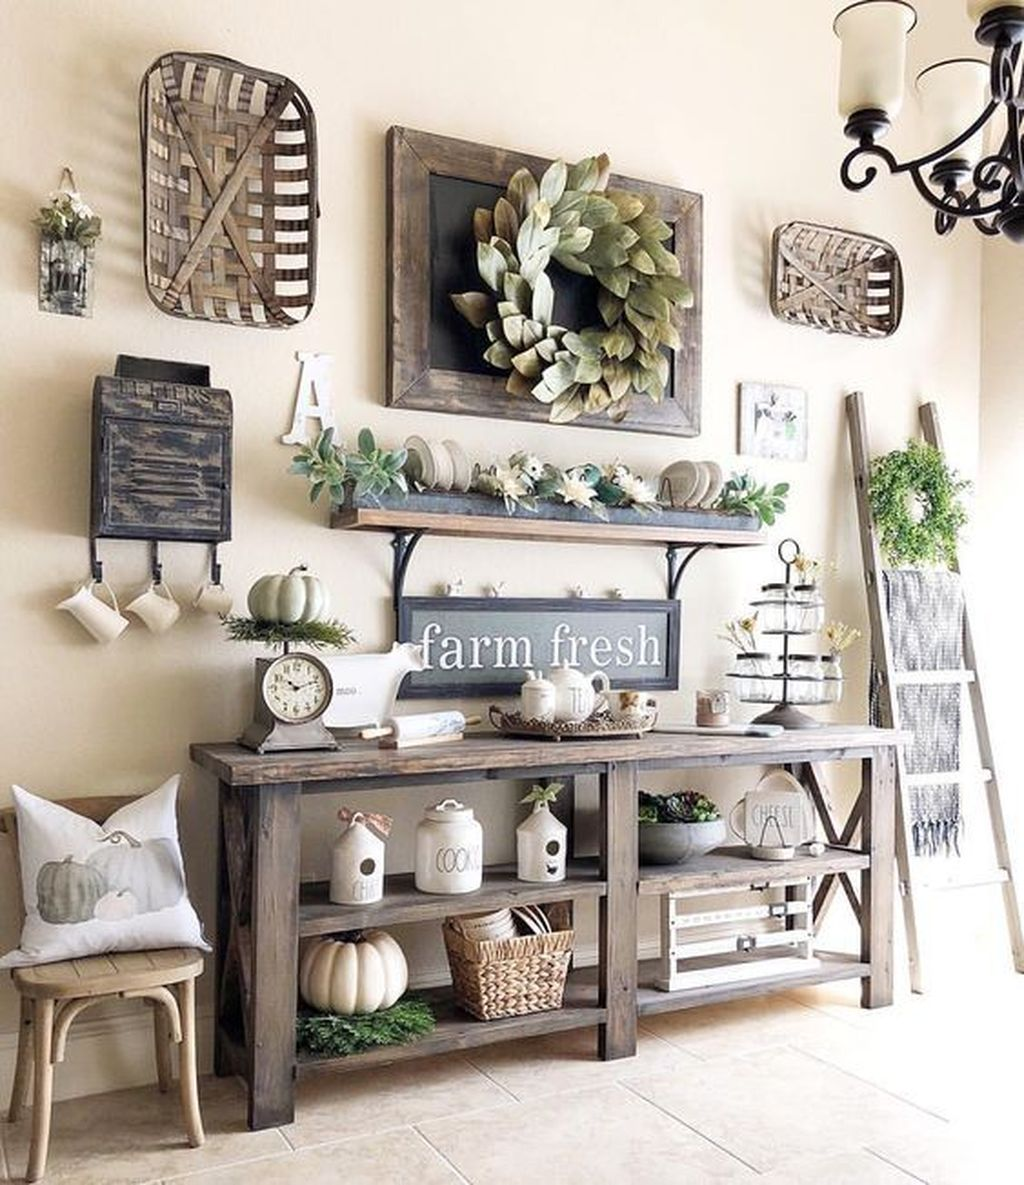 Inspiring DIY Farmhouse Home Decor Ideas 06